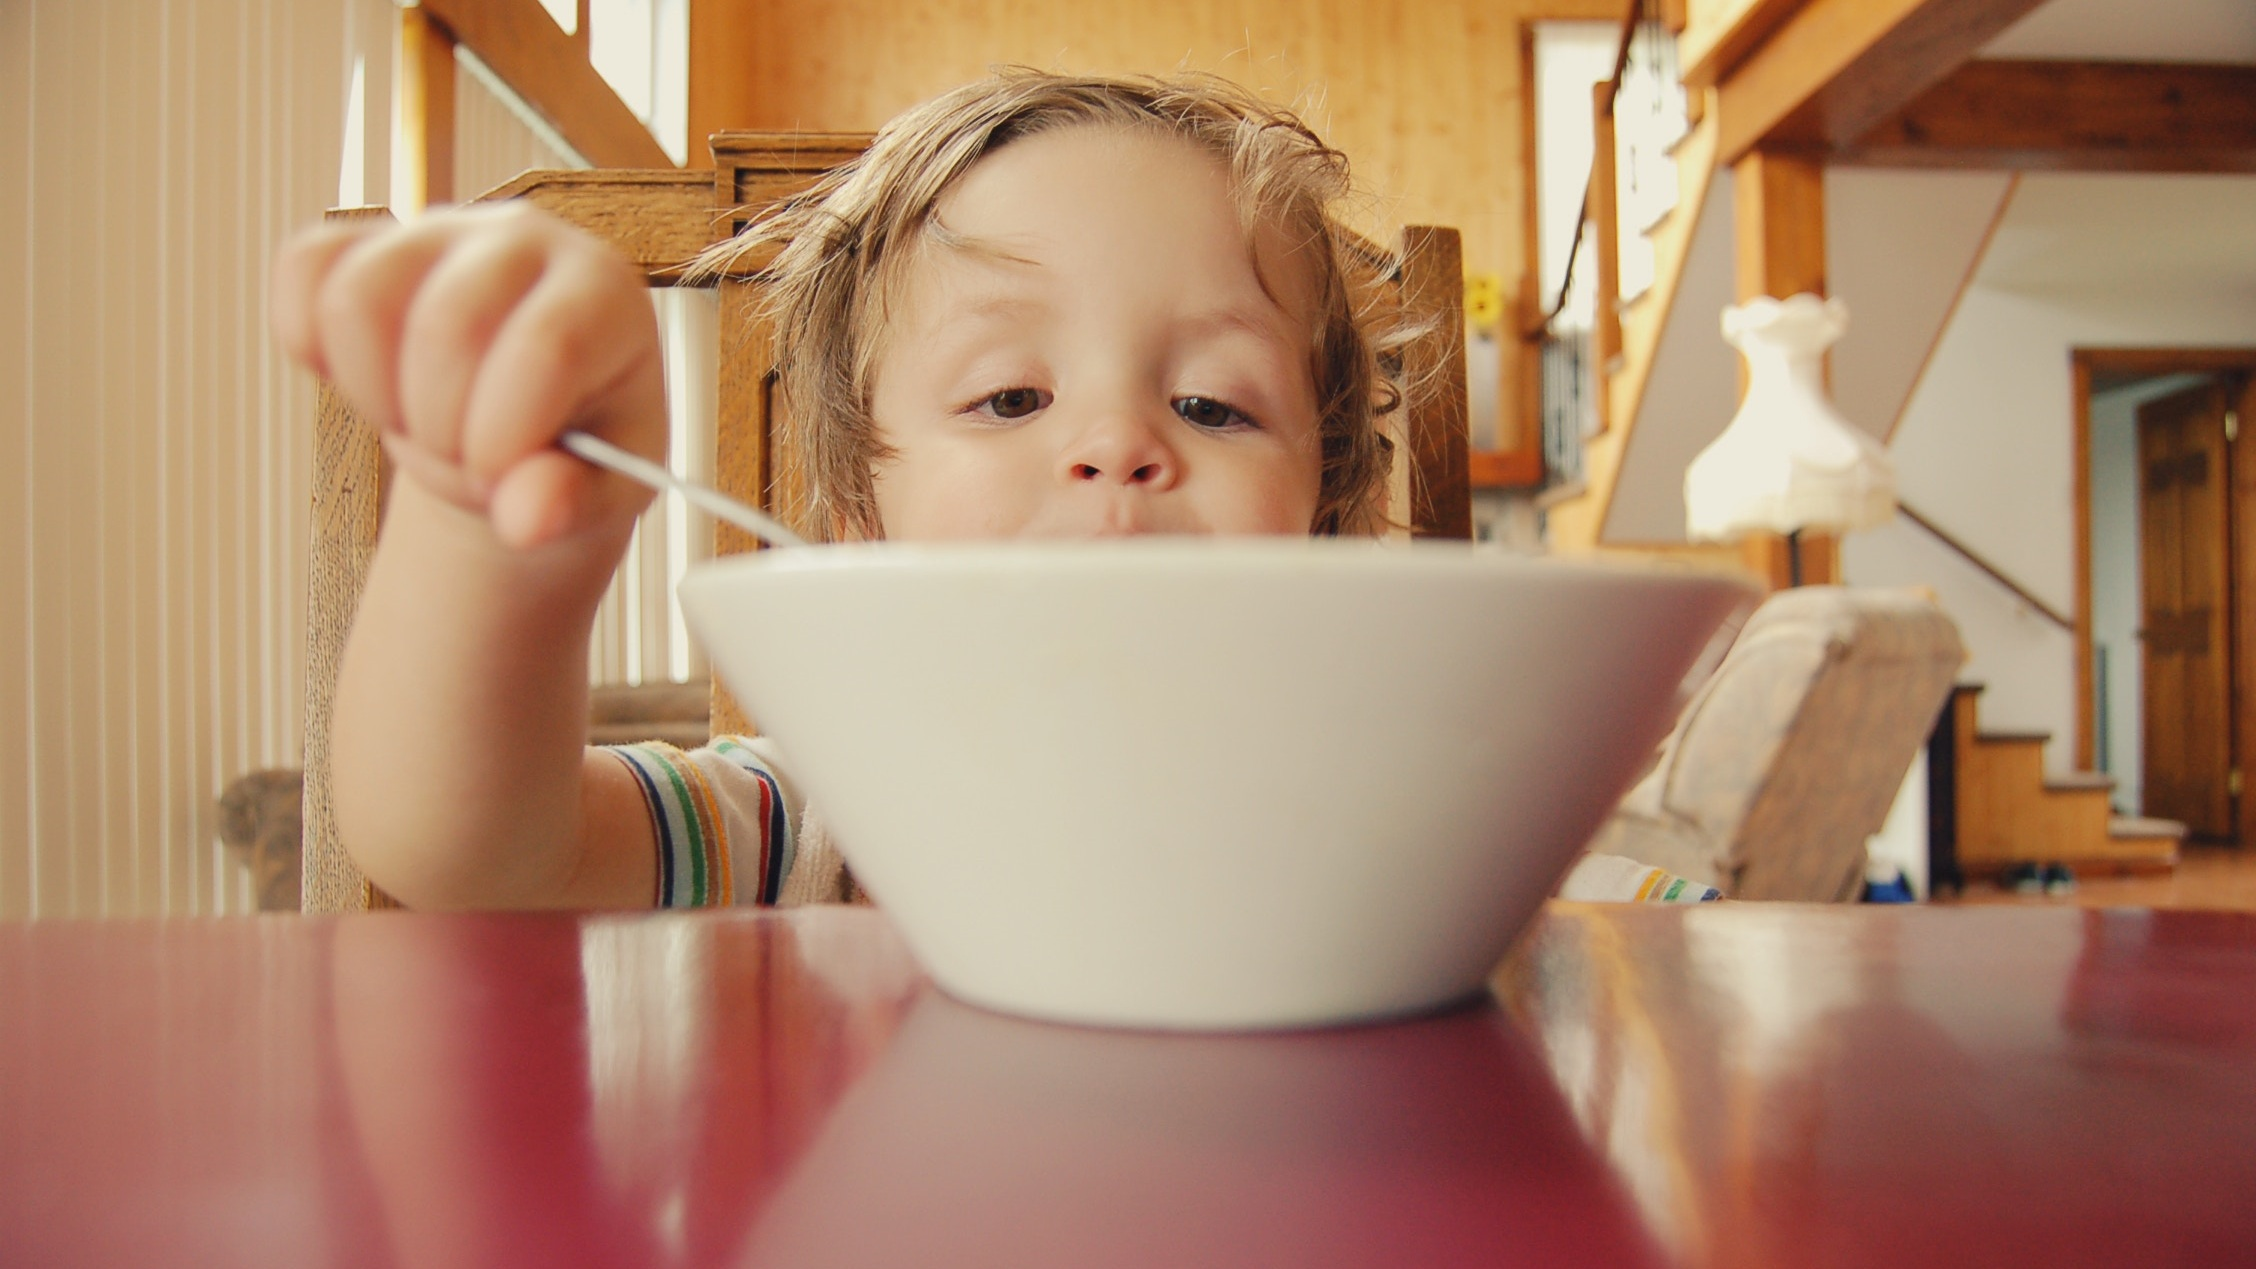 A taste here, a spoonful there, a little food from your kiddo's plate…it all adds up over the course of a day!